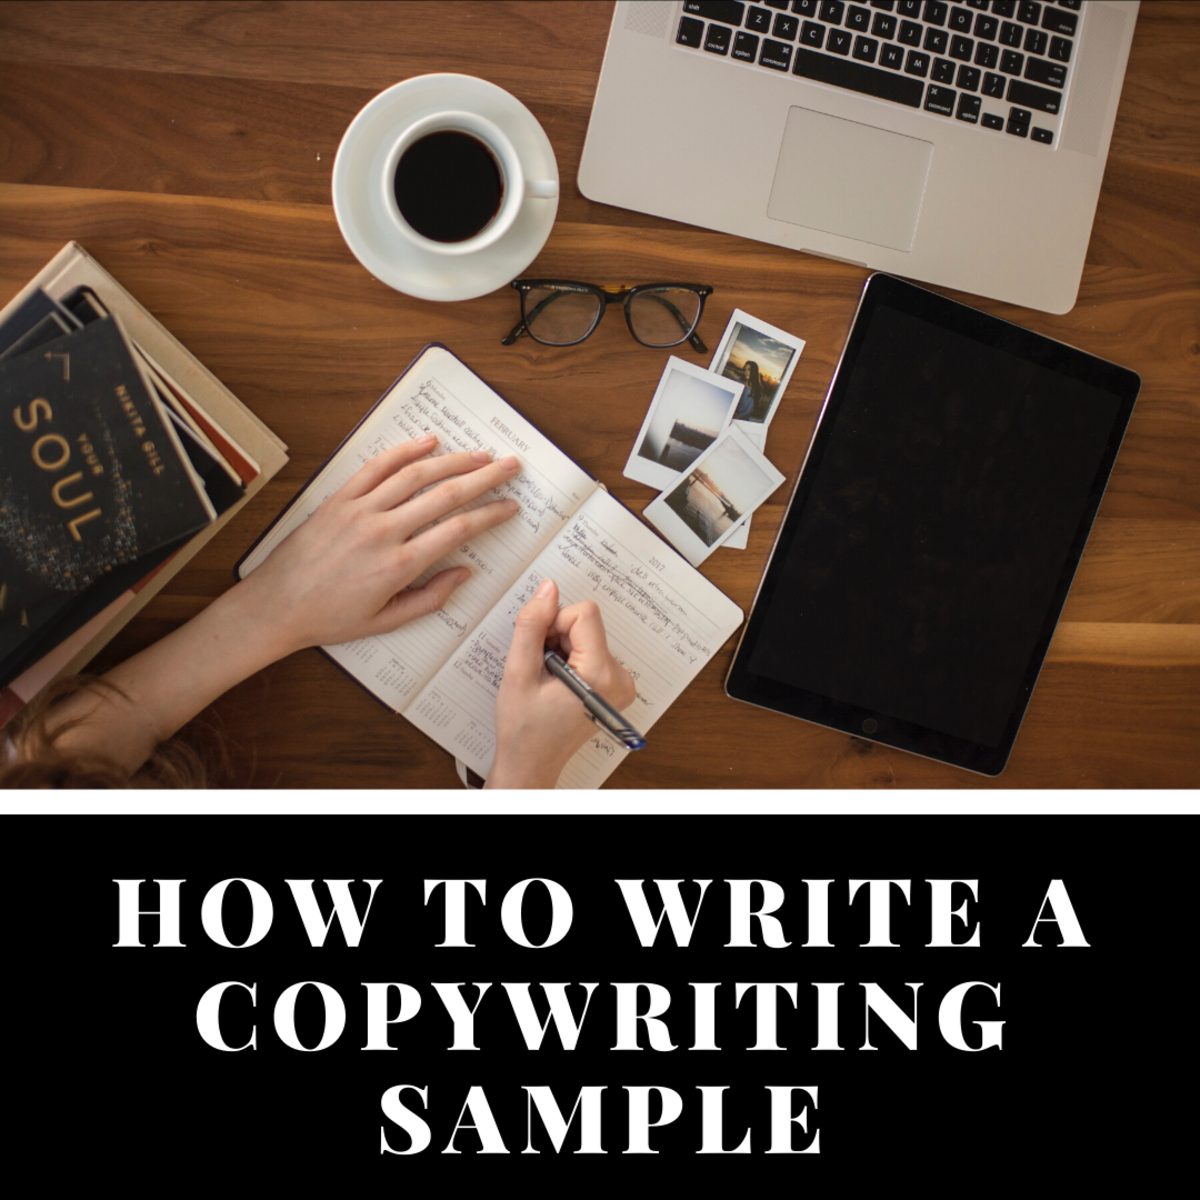 How to Write a Copywriting Sample